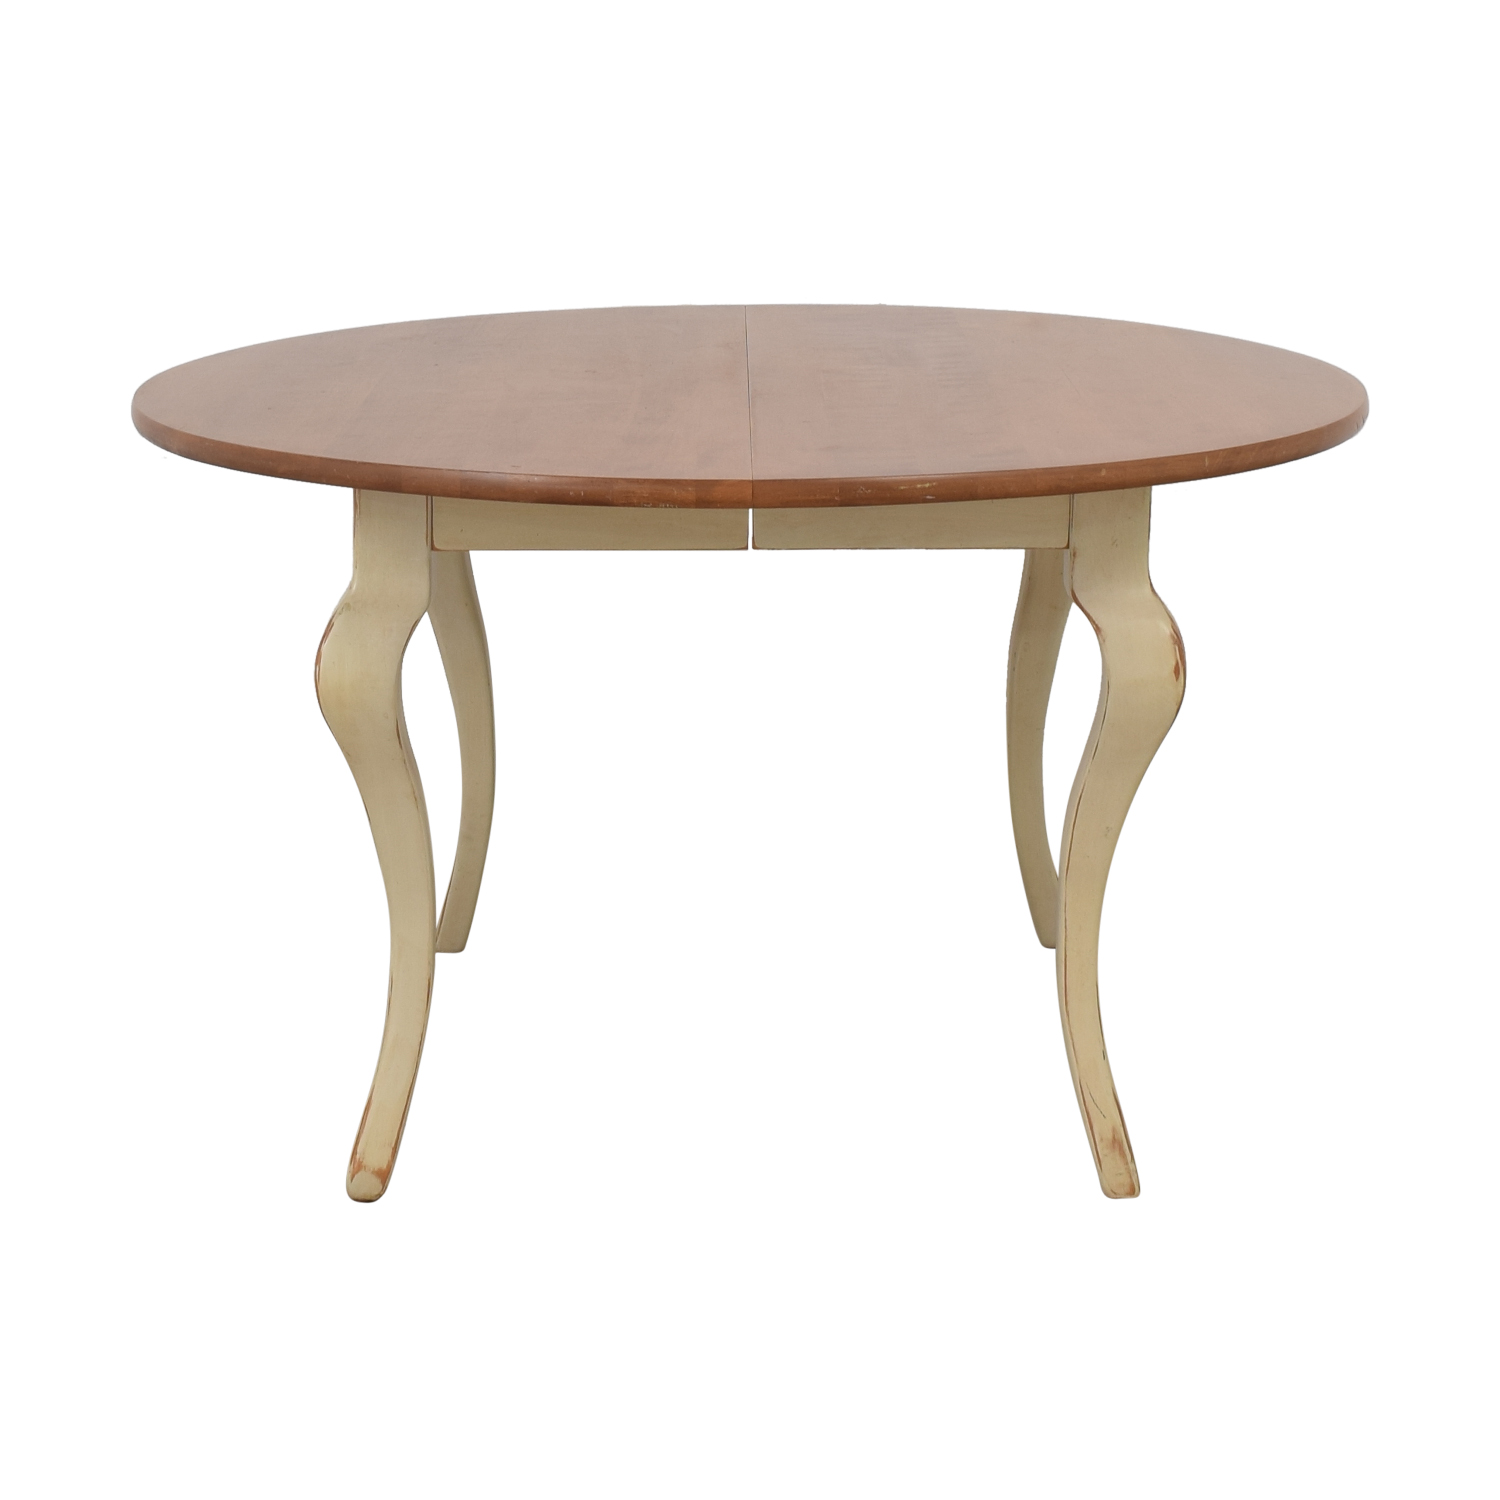 Nichols & Stone Nichols & Stone Stockbridge Pedestal Table used